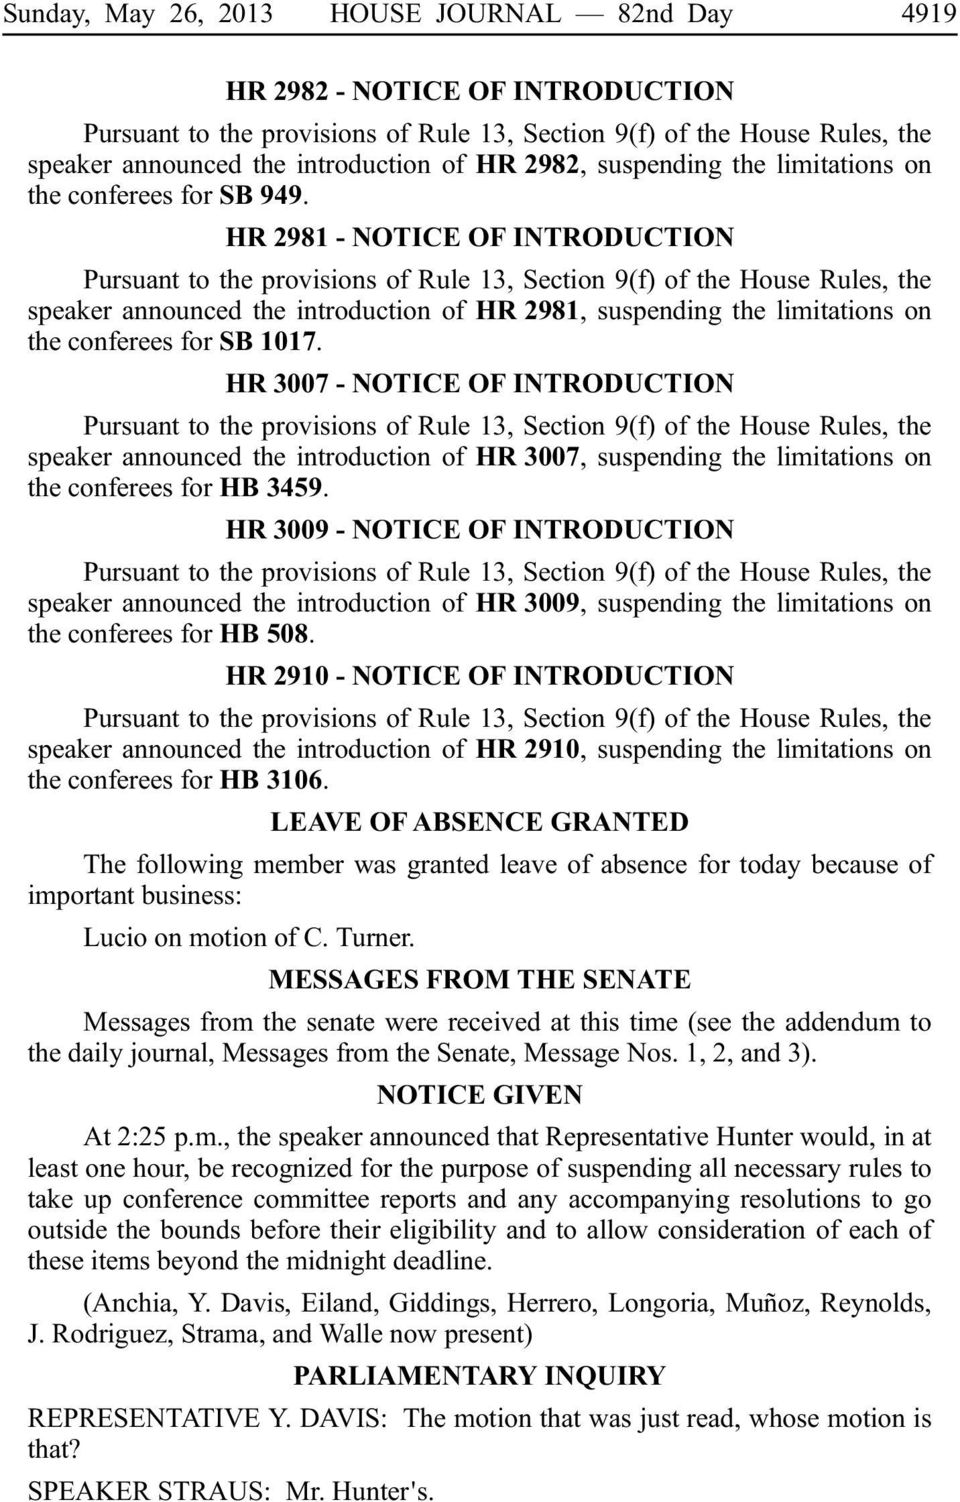 HR 2981 - NOTICE OF INTRODUCTION Pursuant to the provisions of Rule 13, Section 9(f) of the House Rules, the speaker announced the introduction of HRi2981, suspending the limitations on the conferees